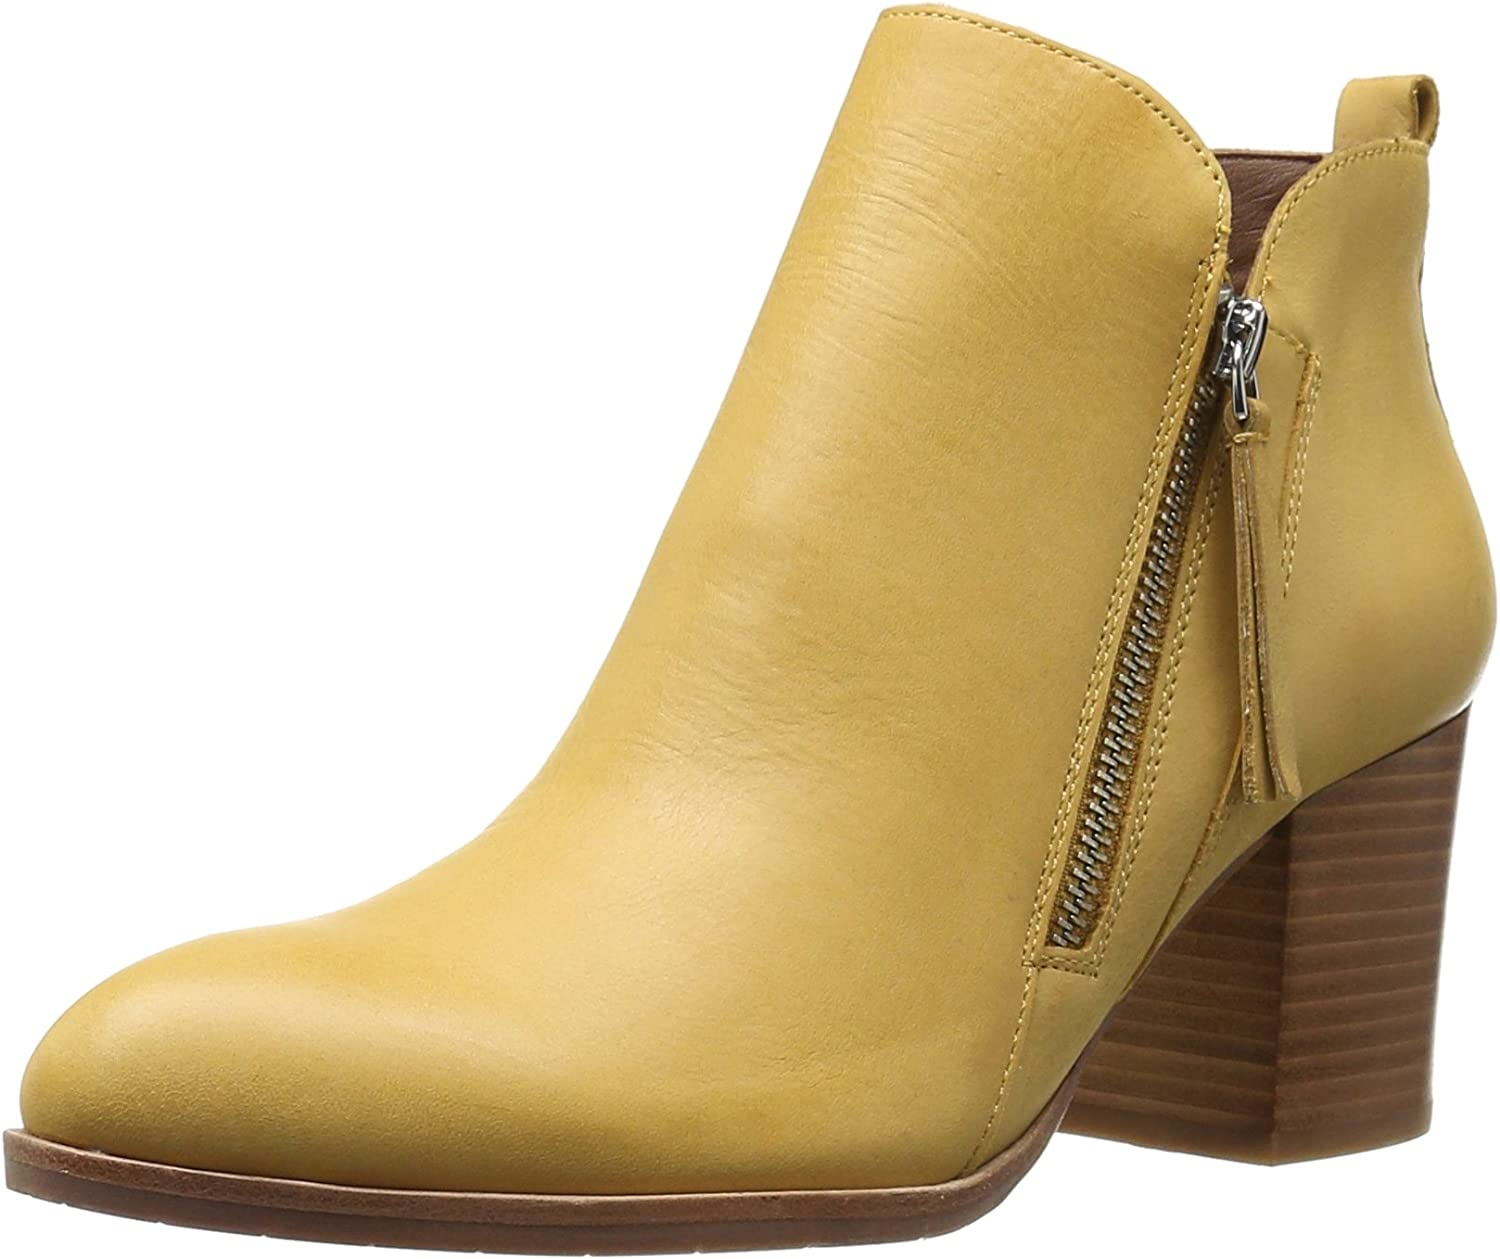 Donald J Pliner Womens Edyn-42 Boot